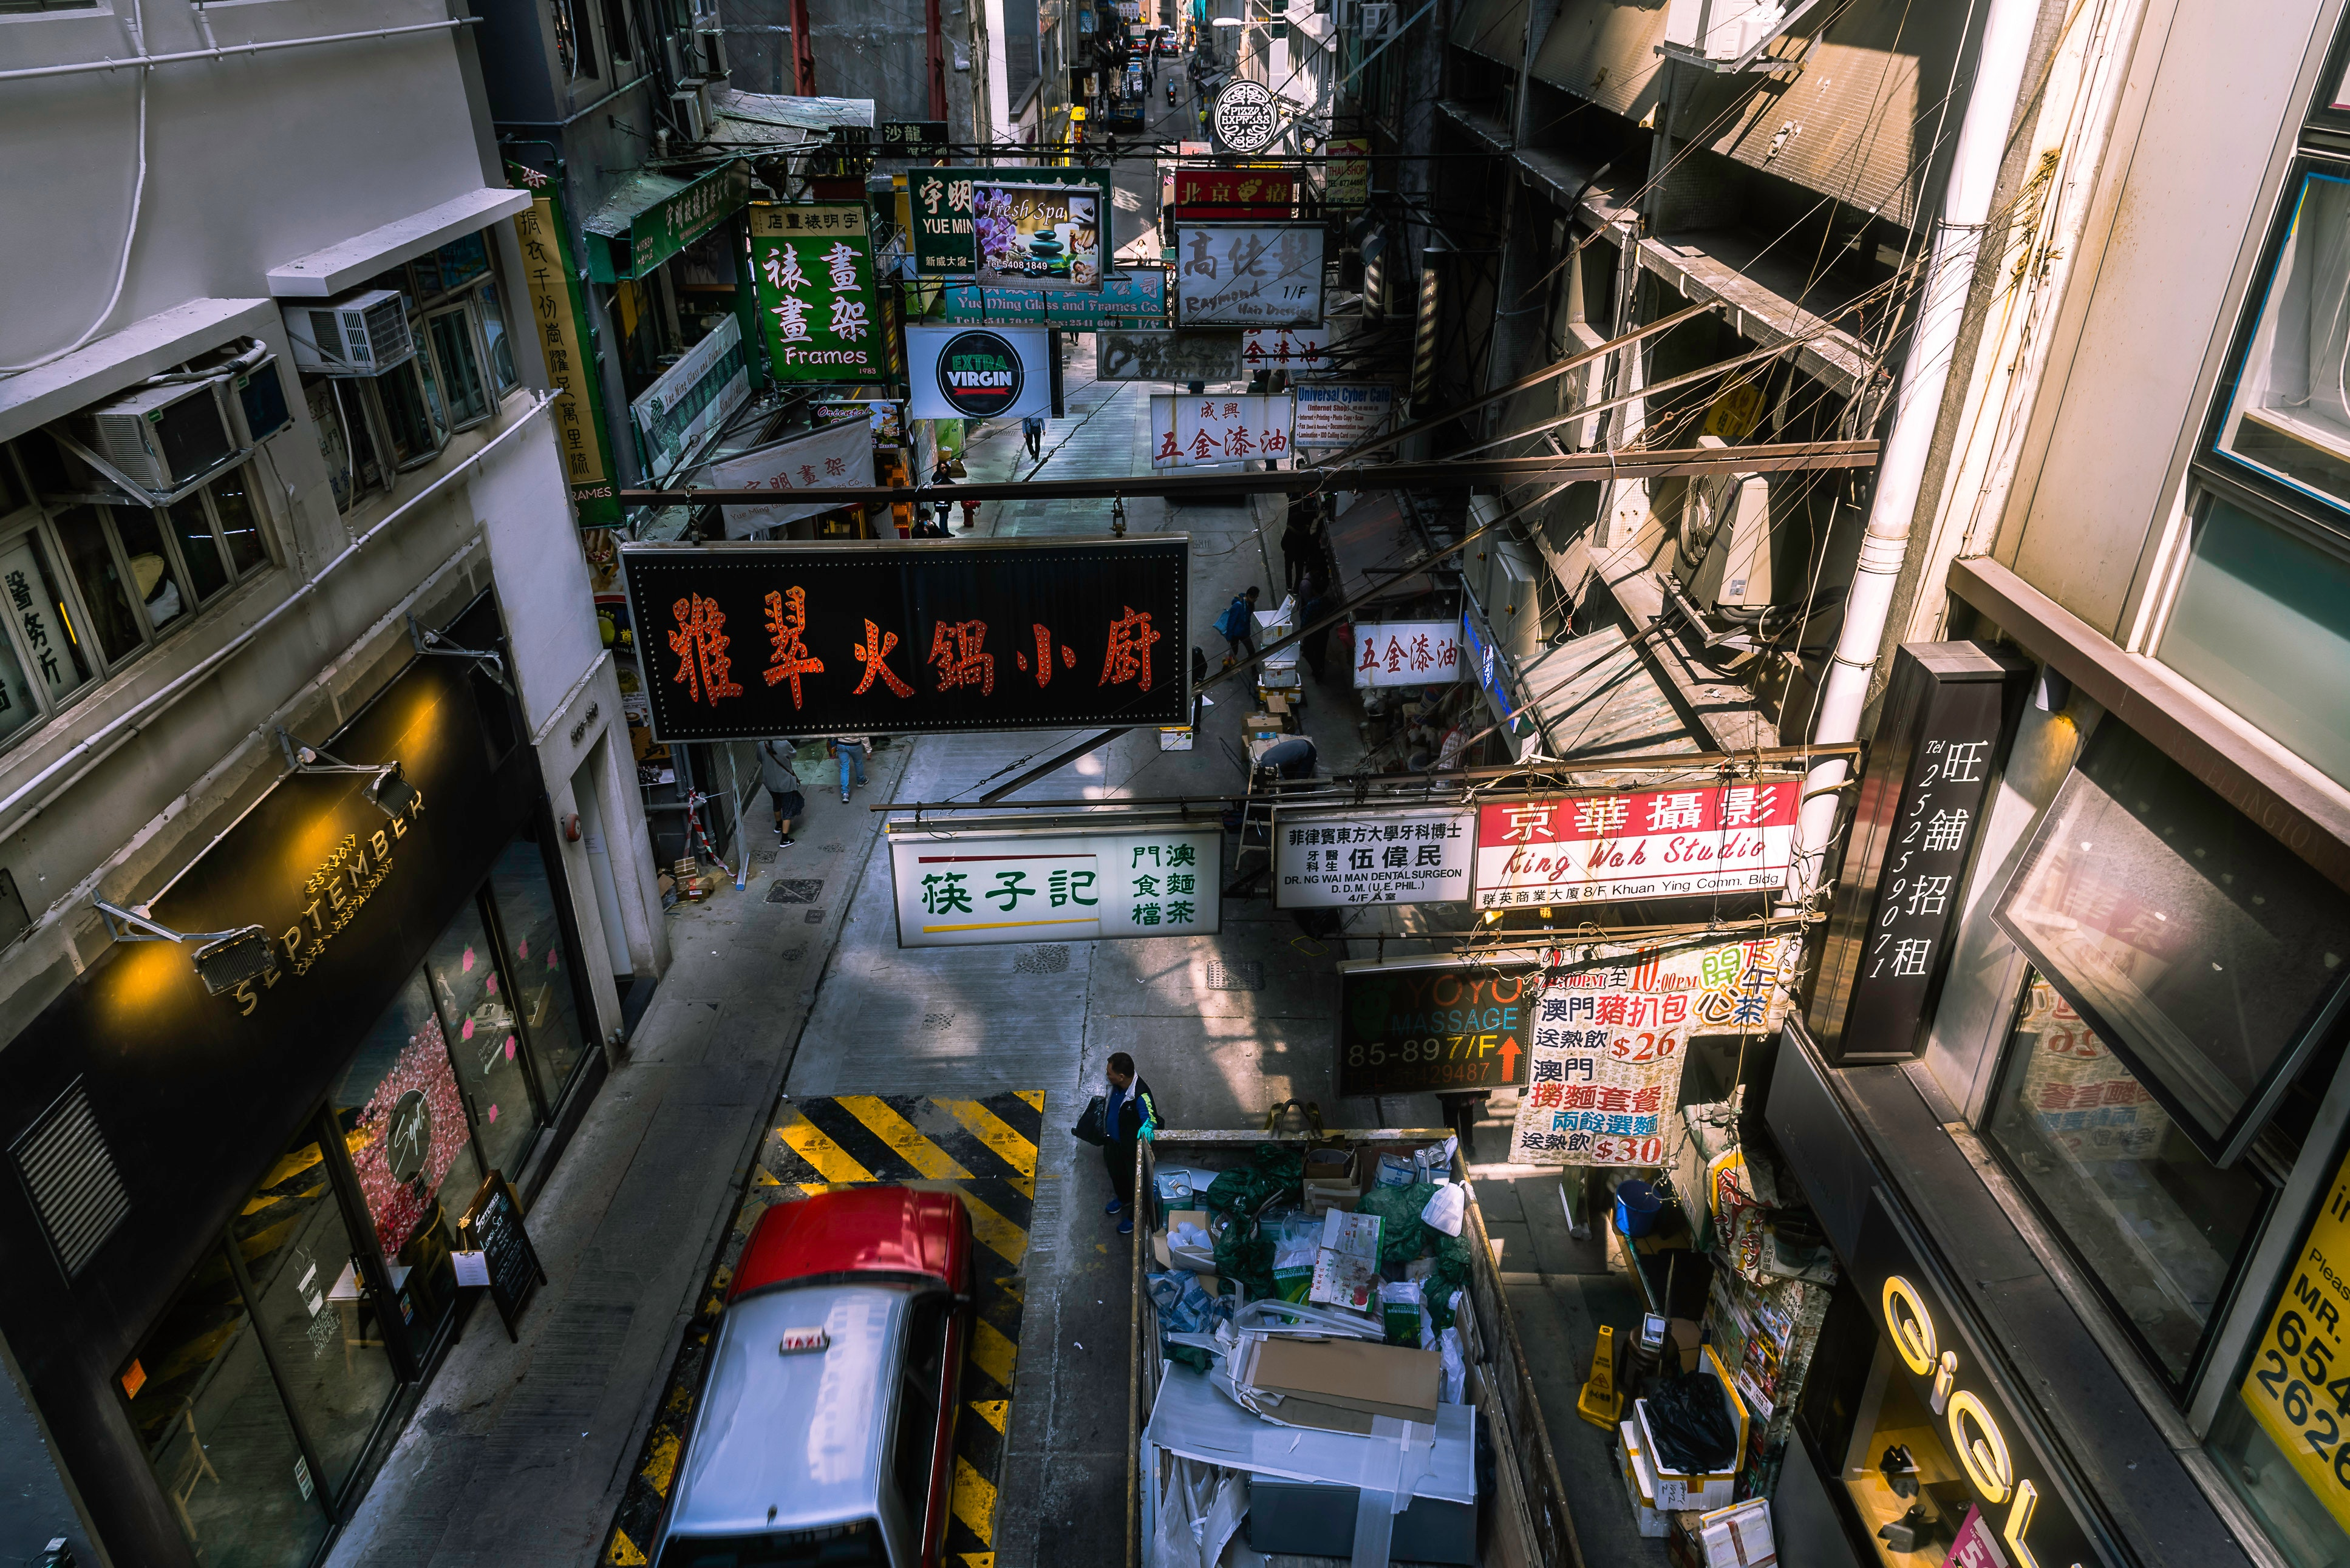 Aerial Photography of the Street, Shopping, Vehicle, Urban, Street, HQ Photo